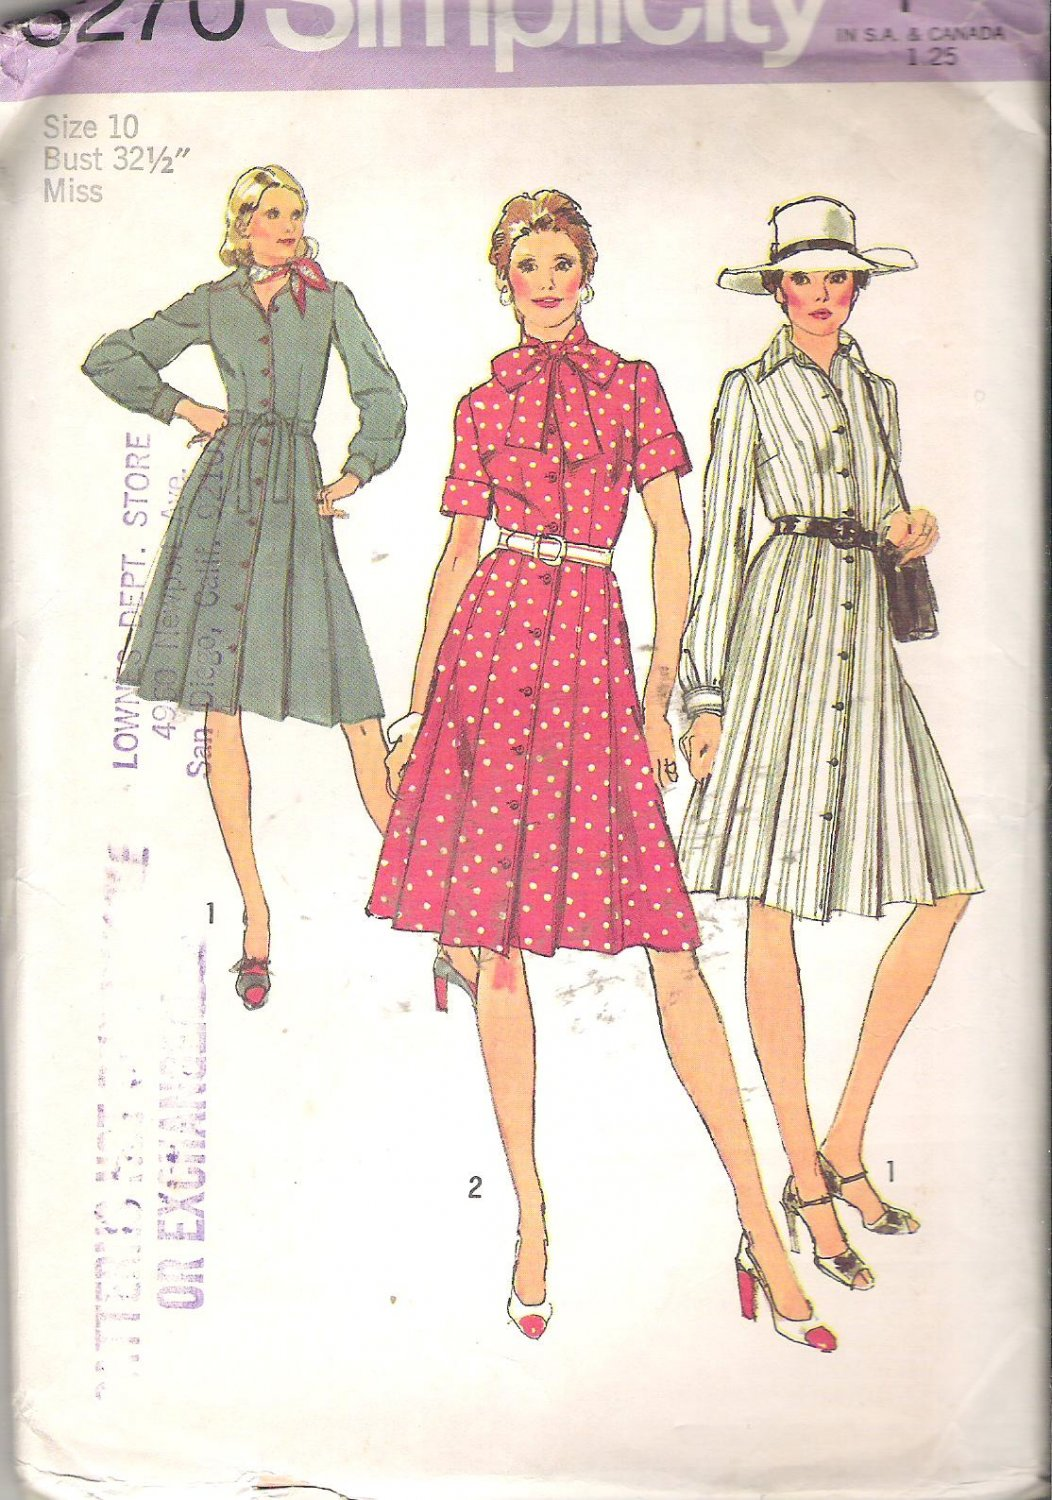 Simplicity 6270 (1974) Button Front Shirt Dress Front Pleats Long Short Sleeves Size 10 Uncut